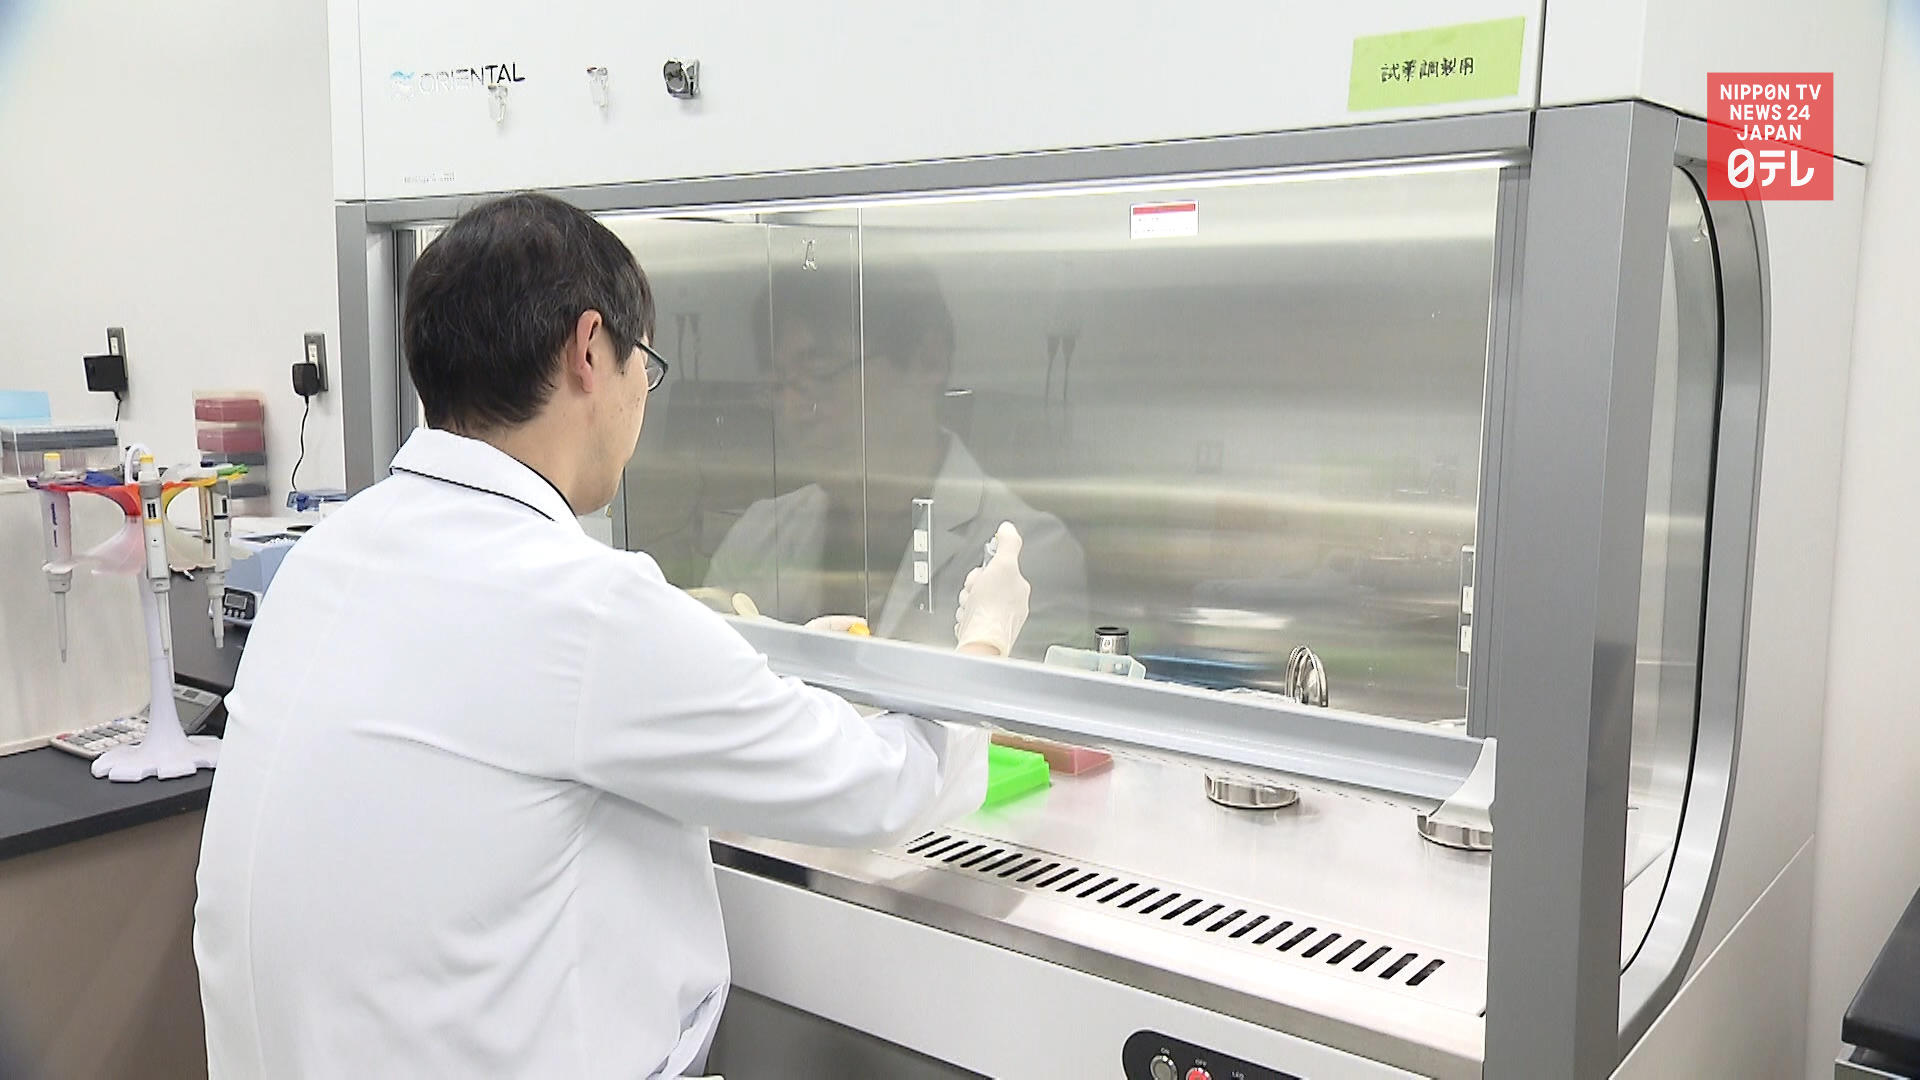 6 new COVID-19 testing sites to be created in Tokyo